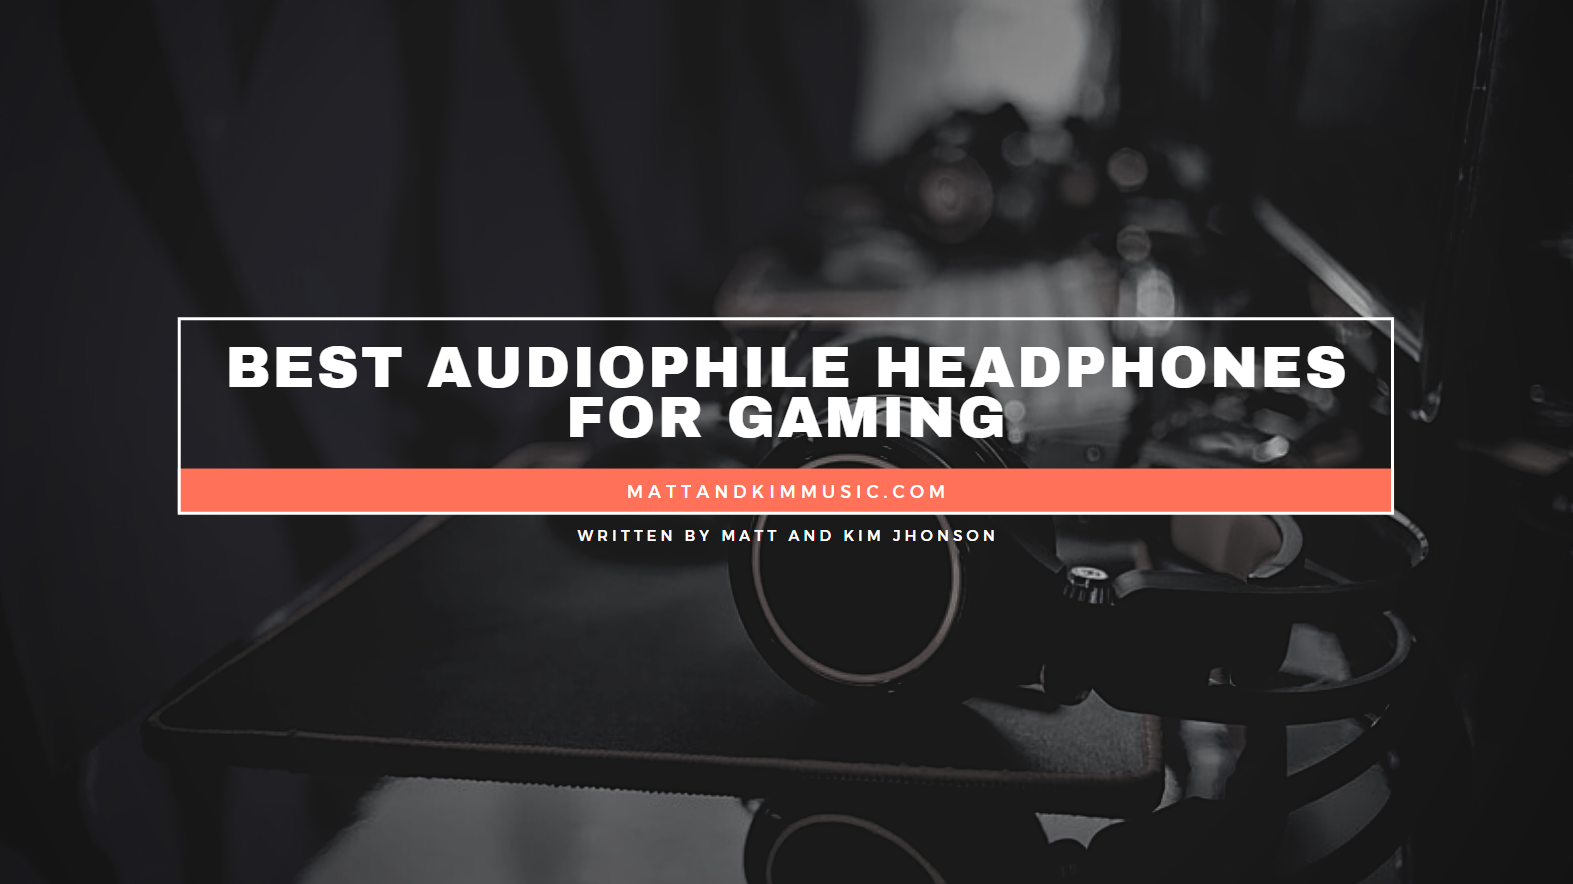 Best Audiophile Headphones for Gaming